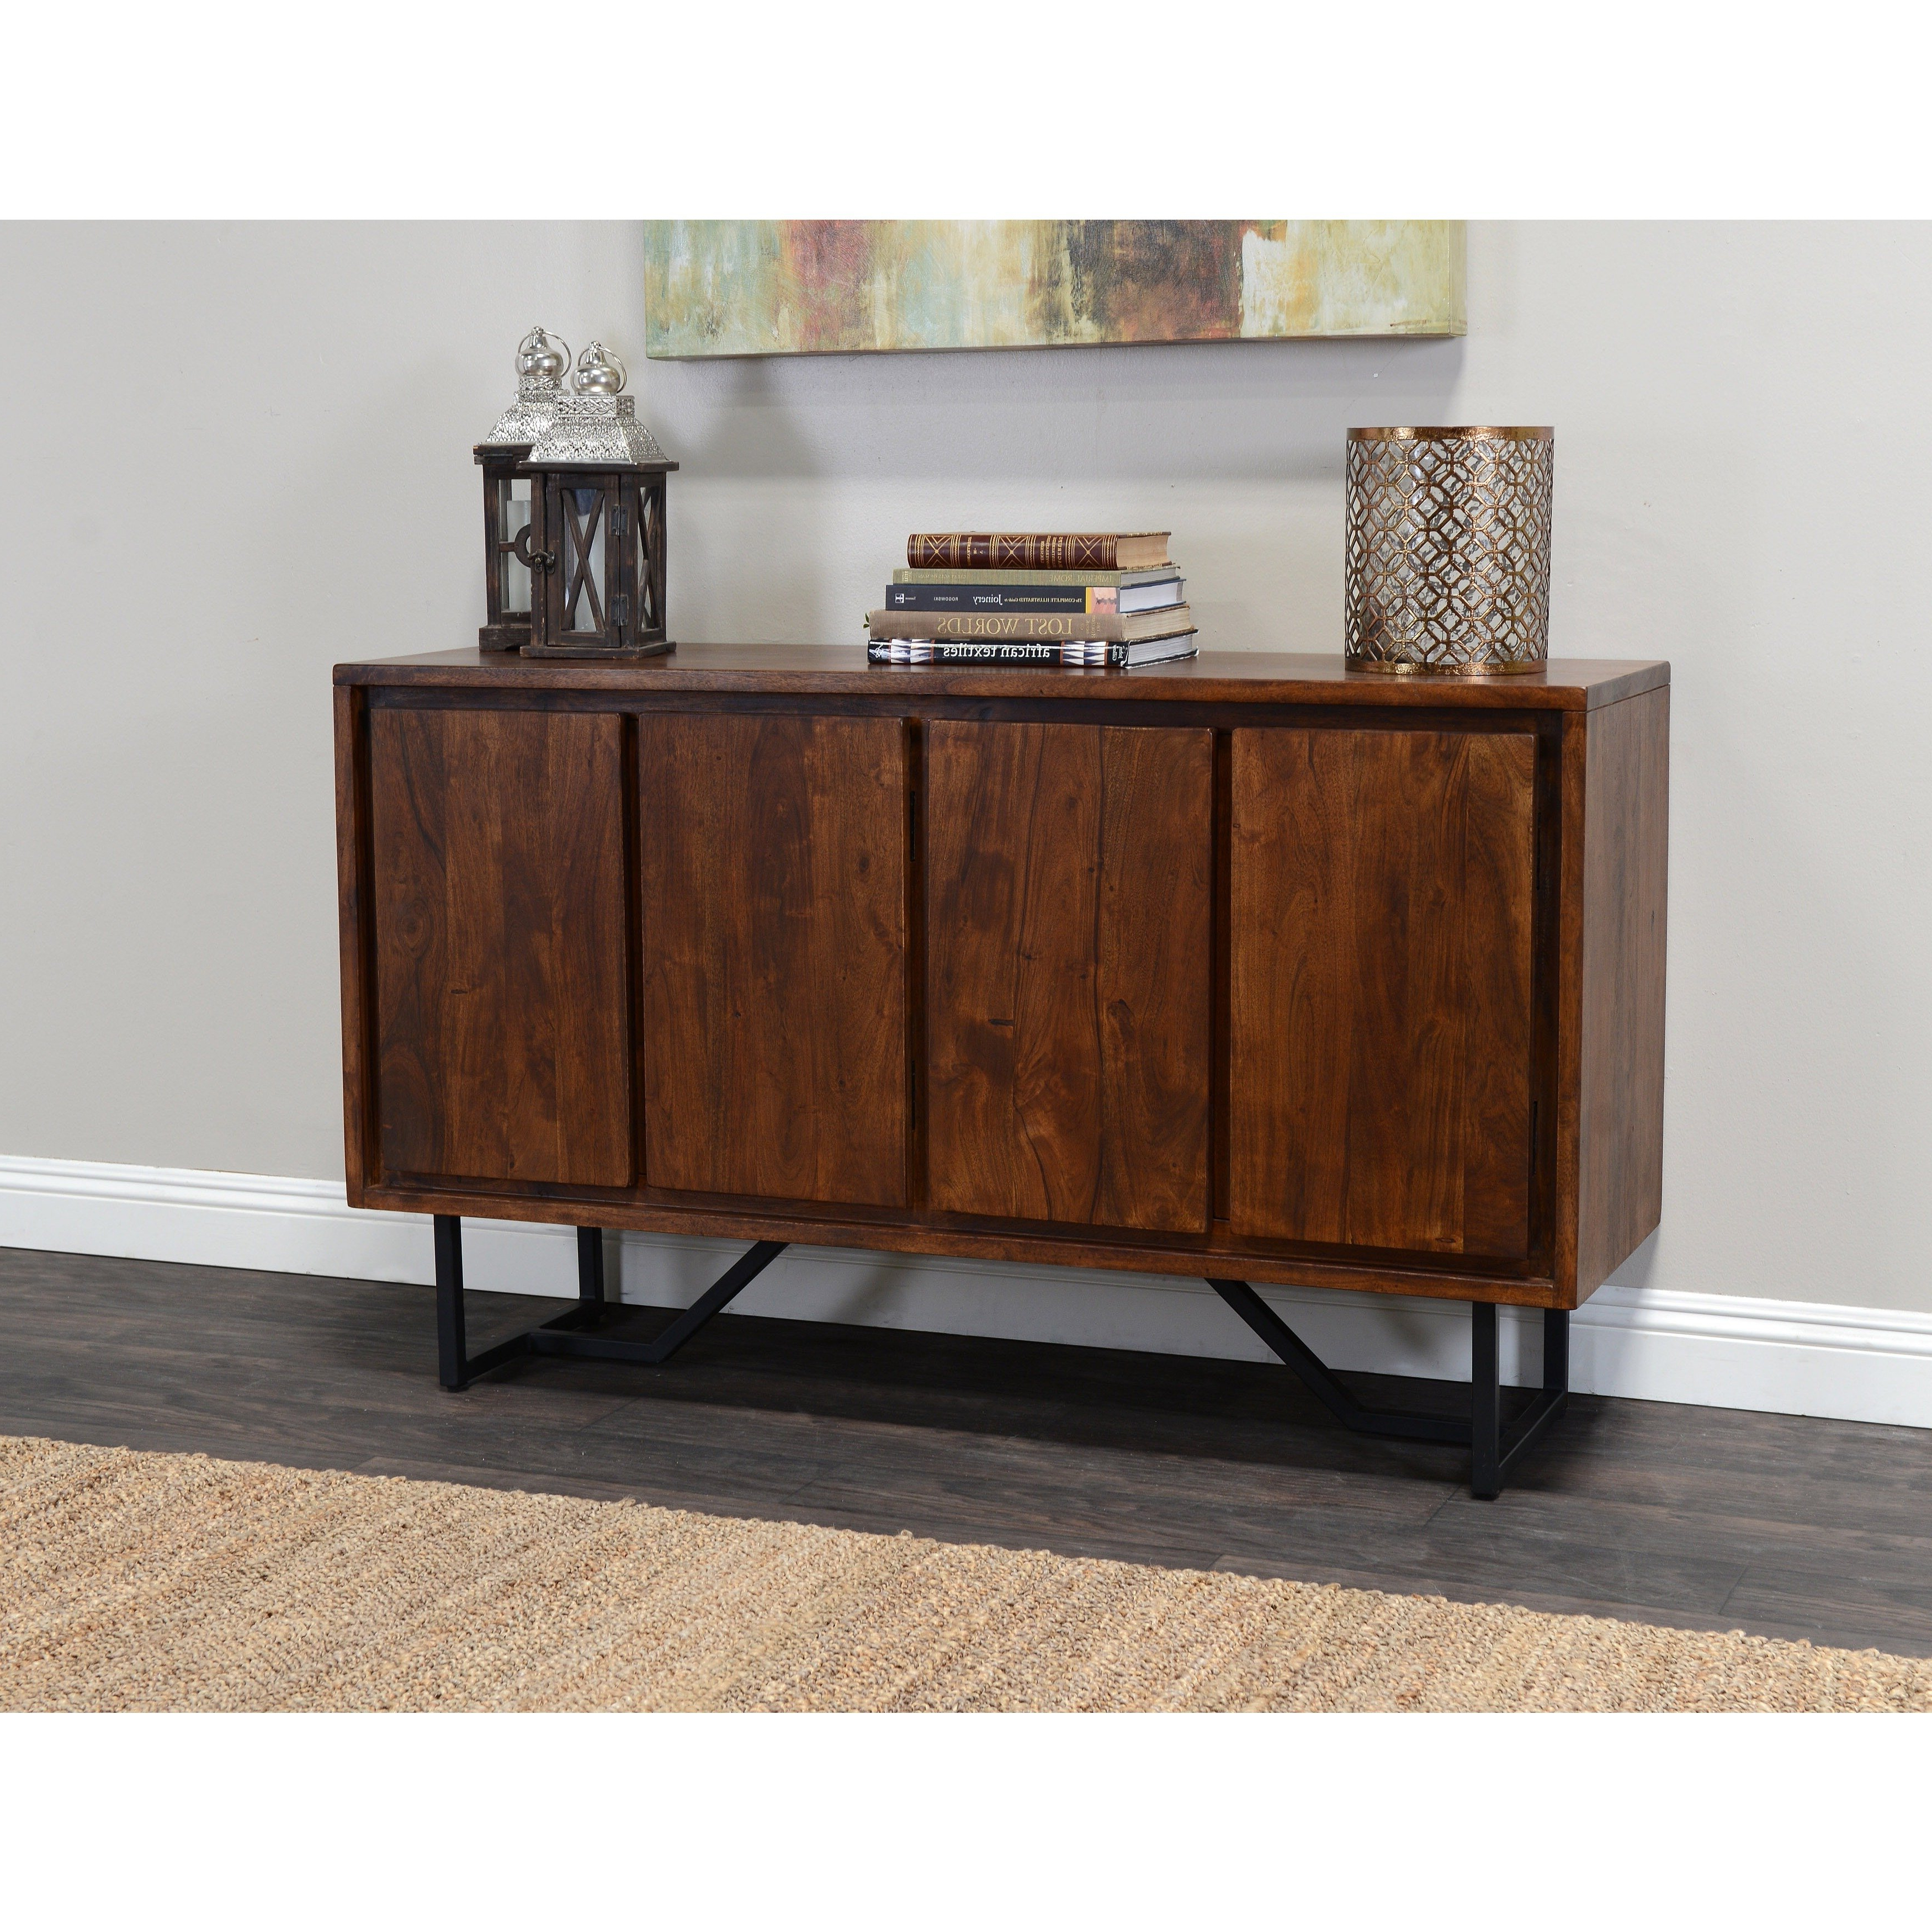 2018 Shop Kosas Home Wabby 4 Door Dark Walnut Sideboard – Free Shipping With Regard To Walnut Finish 4 Door Sideboards (View 1 of 20)